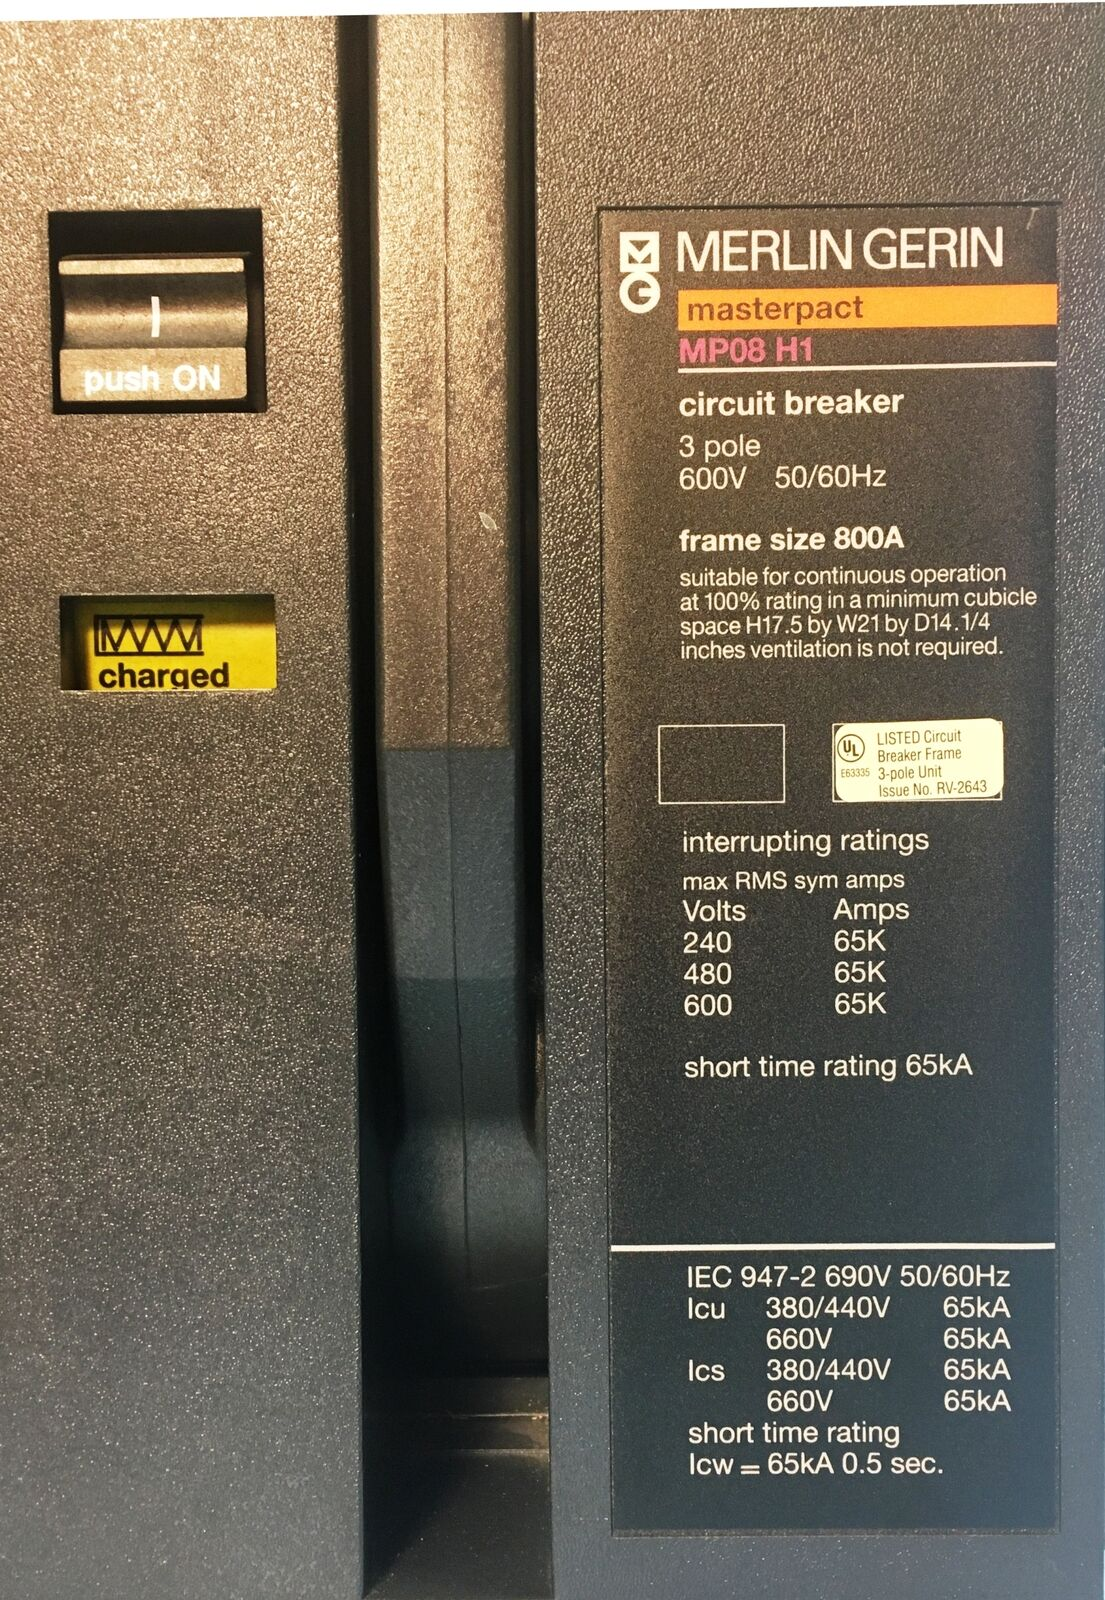 Merlin Gerin Mp08h1 800a Masterpact Lsi Circuit Breaker W Uvr Mp08 Replacement Parts Lift Breakers Time Delay Norton Secured Powered By Verisign